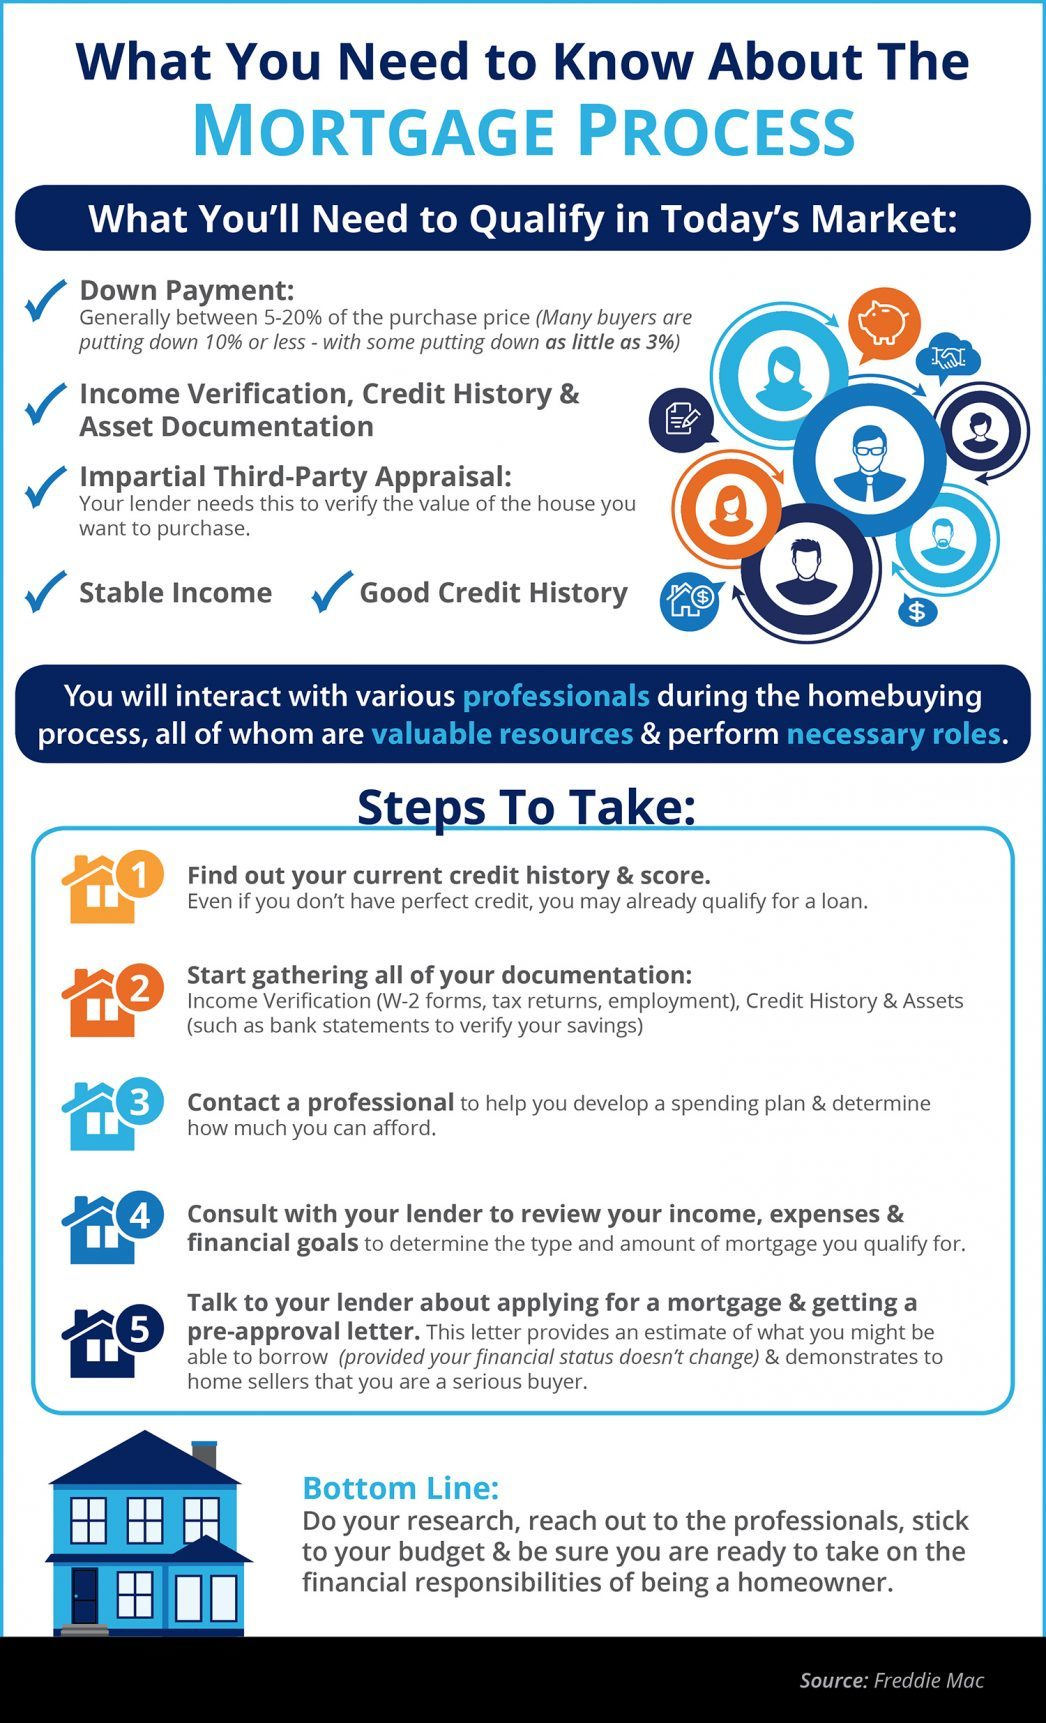 Home Buying: The Mortgage Process: What You Need to Know